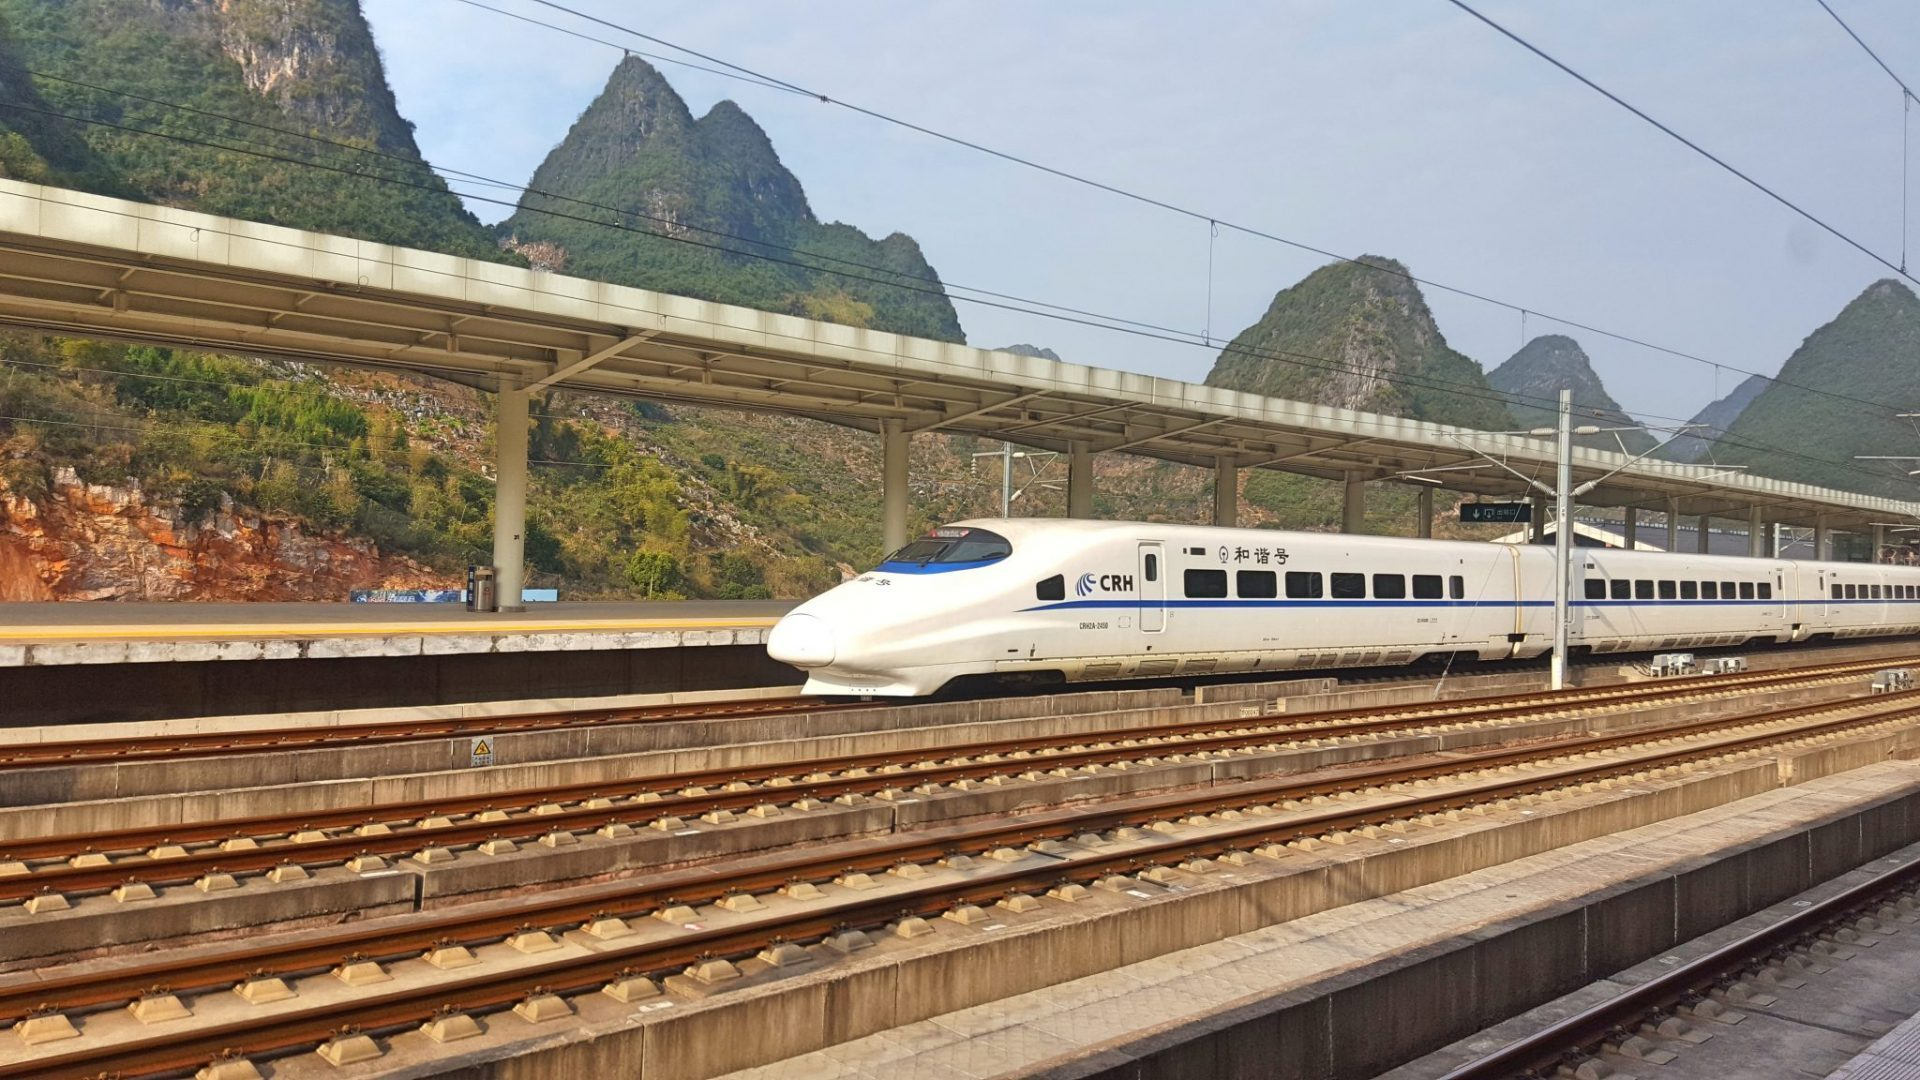 China high speed train and mountains